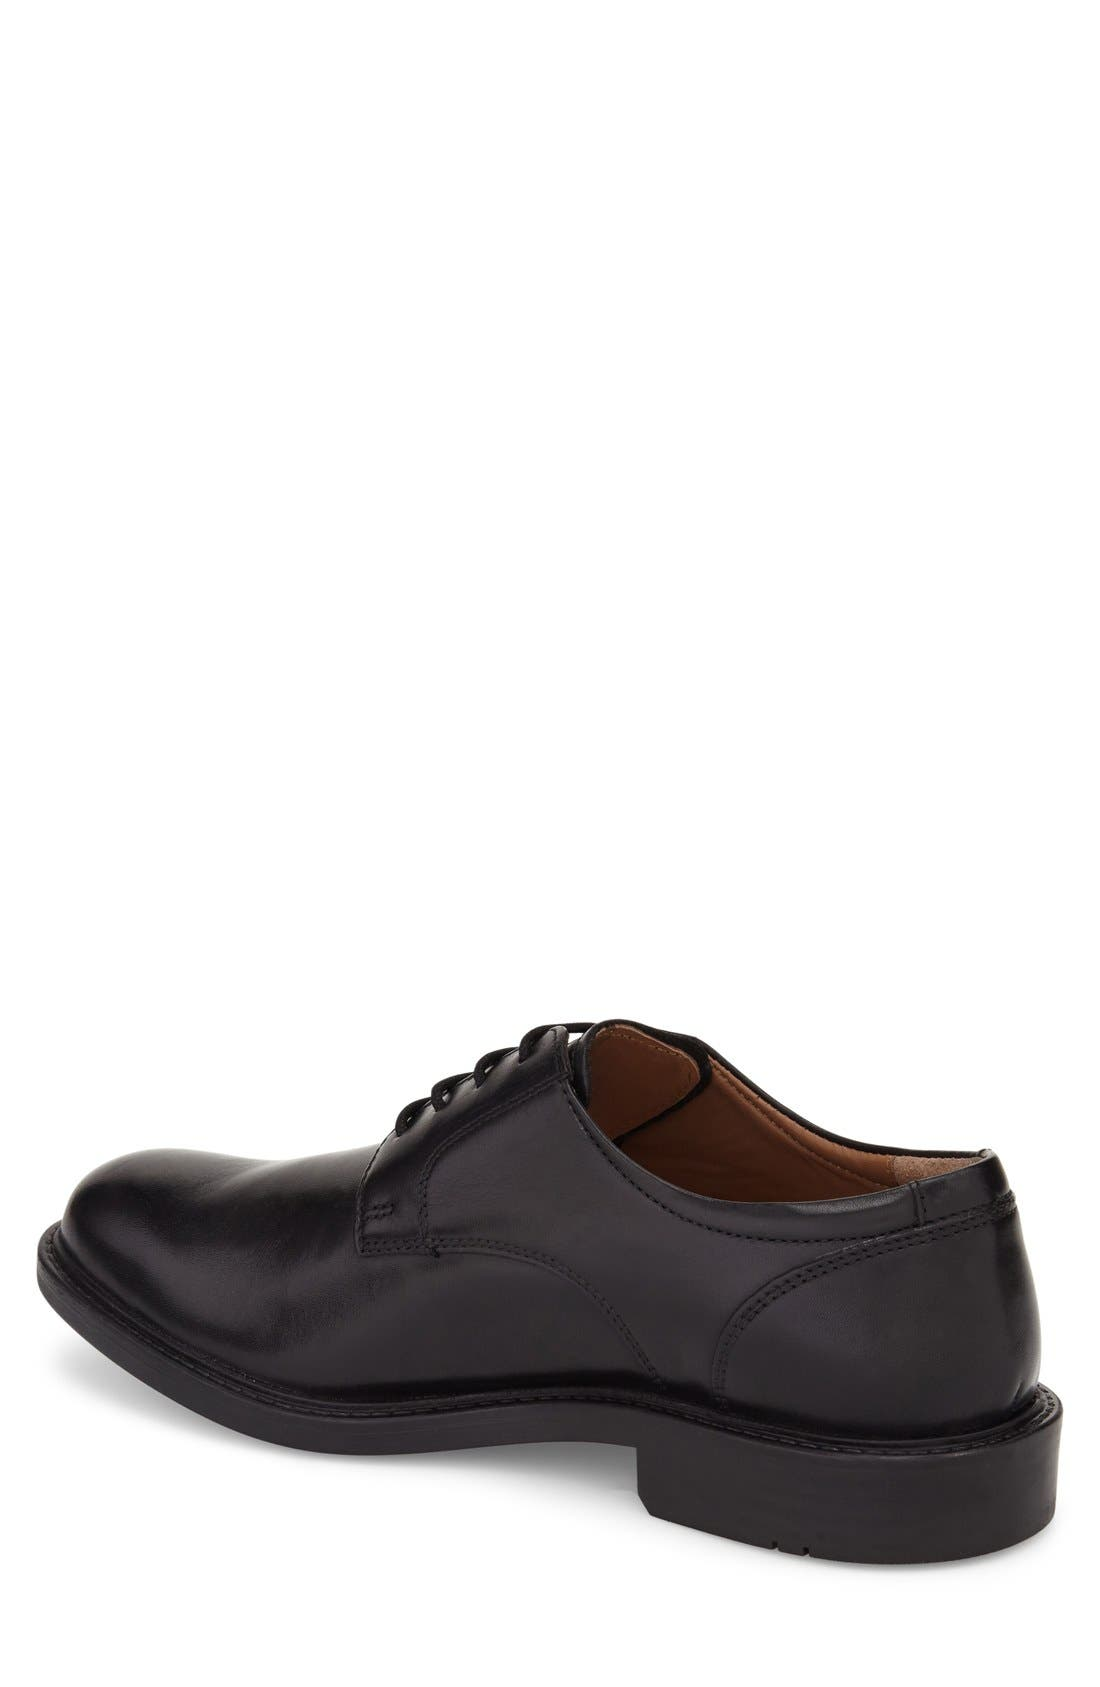 Tabor Plain Toe Derby,                             Alternate thumbnail 3, color,                             BLACK LEATHER